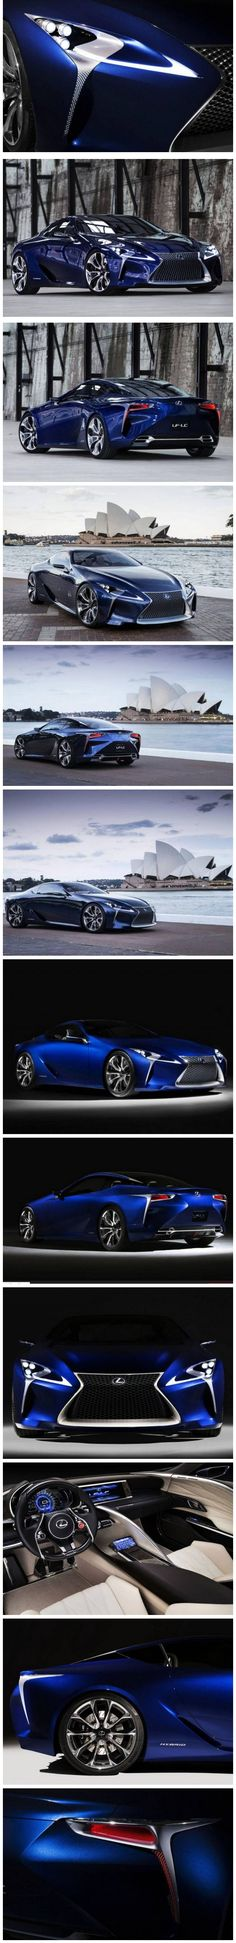 FUTURE Tech/Concepts ◈ :: The Lexus LF-LC Concept